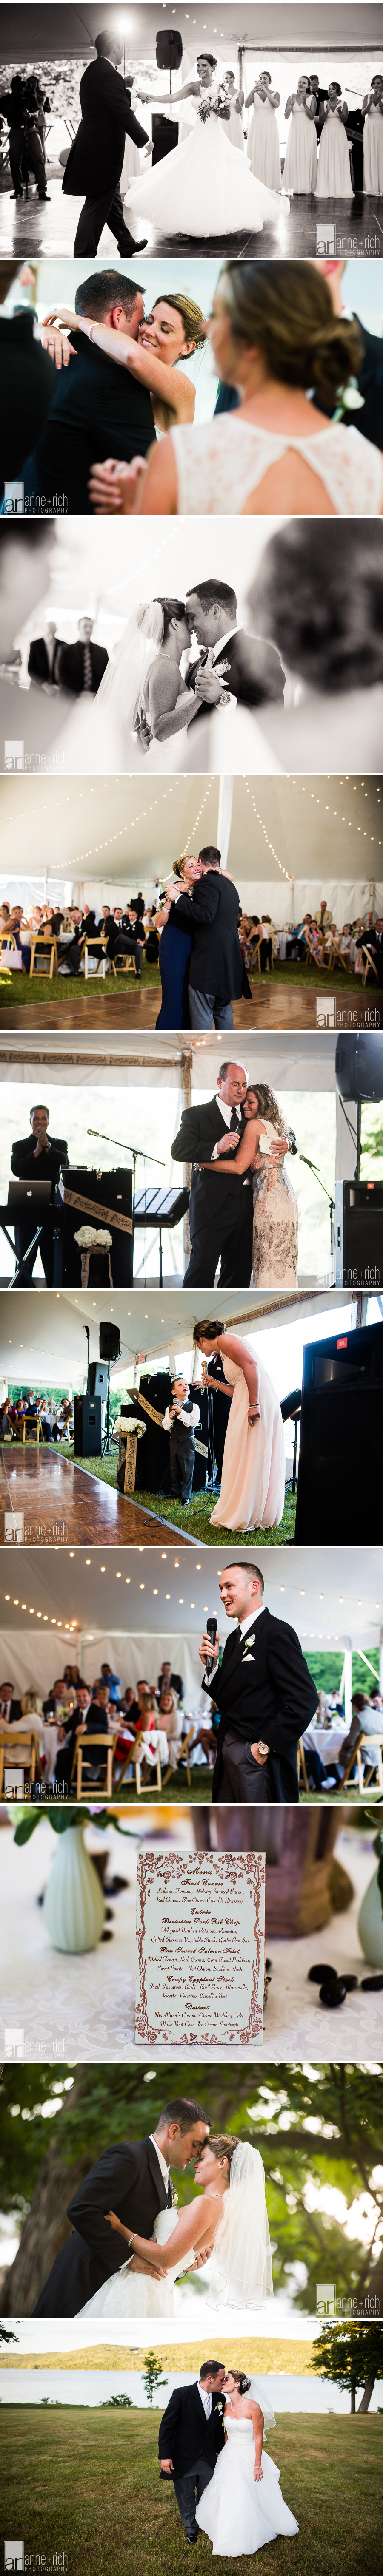 cooperstown_wedding3